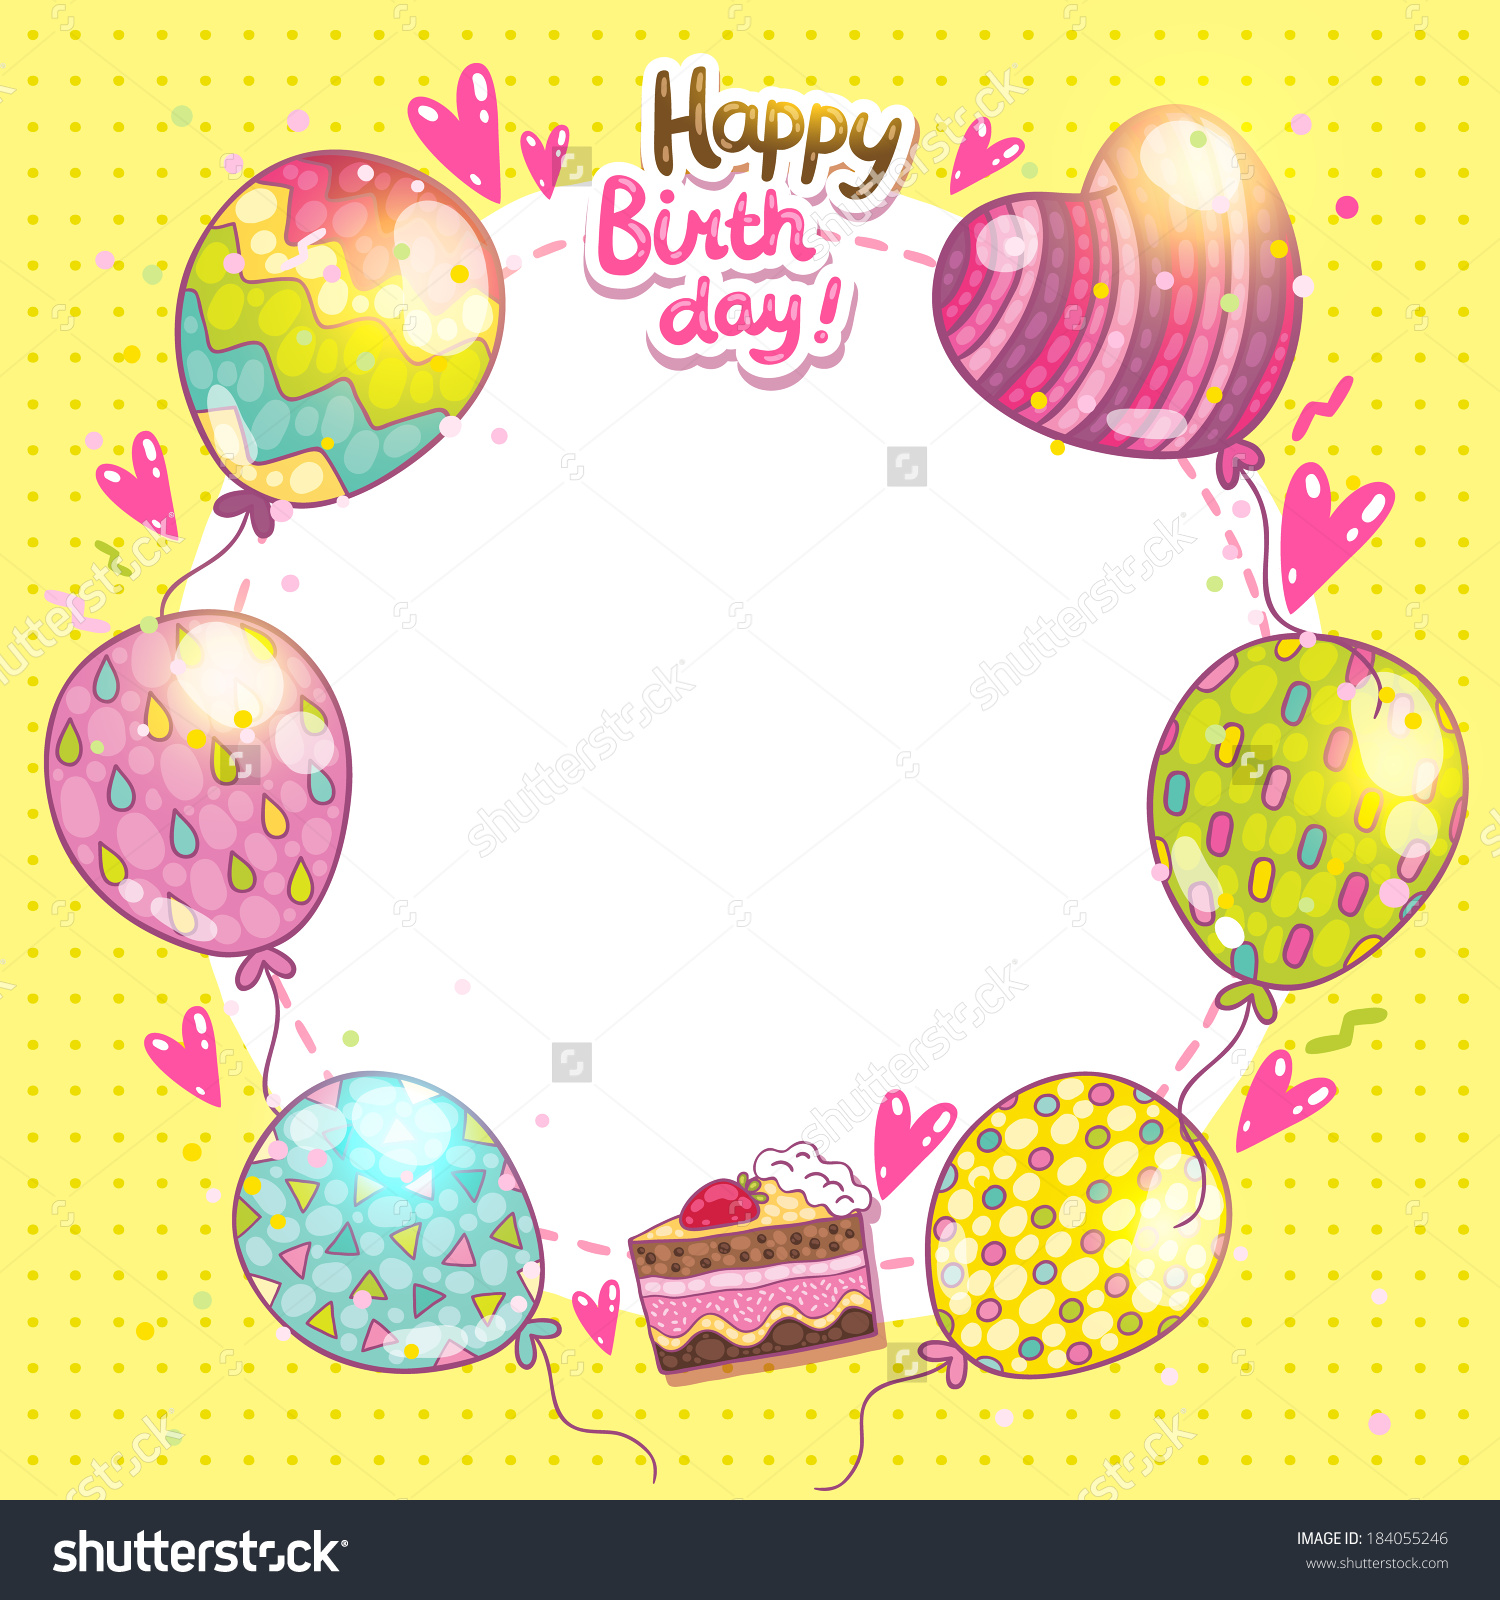 background images for birthday greetings ; birthday-card-background-with-cake-and-ballloons-1